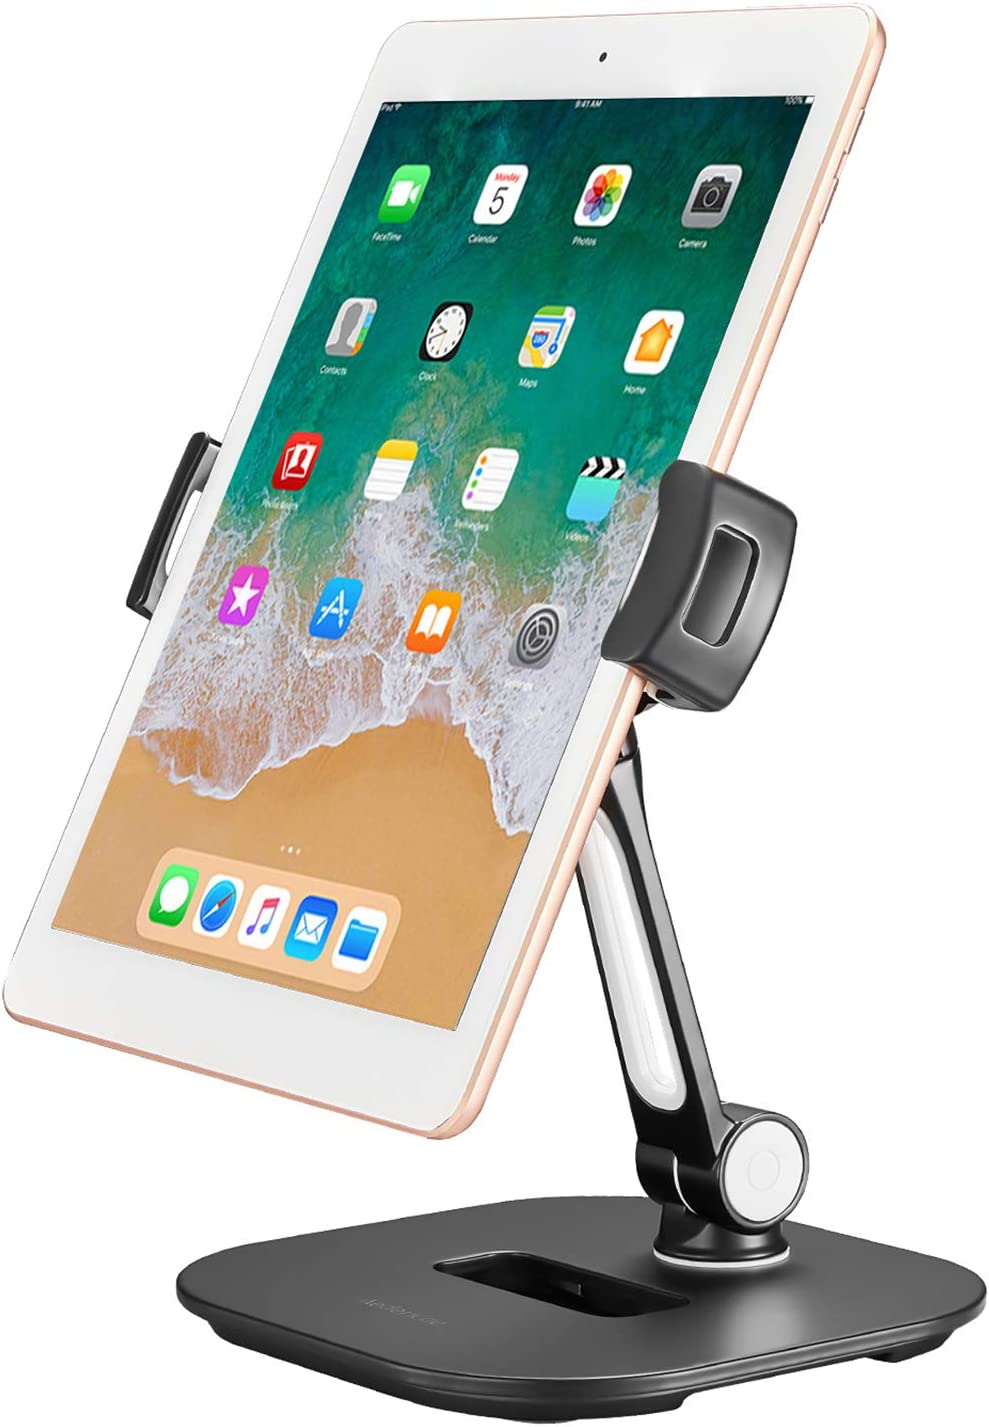 Aedericoe Aluminum Tablet Holder Cell Phone Stand 360° Swivel Tablet Stand Holder for Office Desk Kitchen, Compatible with iPad iPhone Samsung 4-11'' Devices